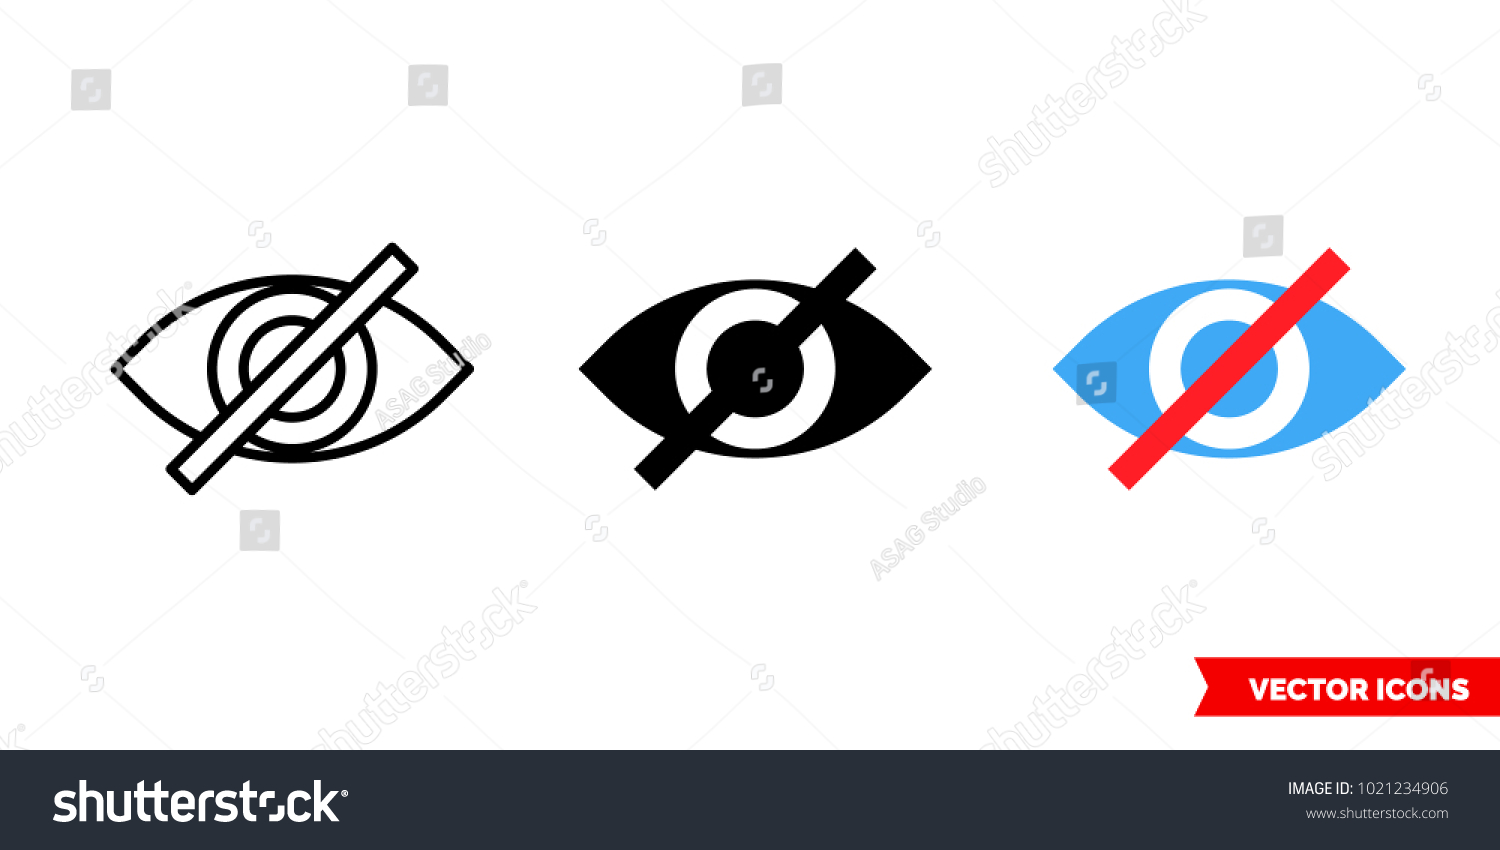 Invisible Symbol Icon 3 Types Color Stock Vector Royalty Free